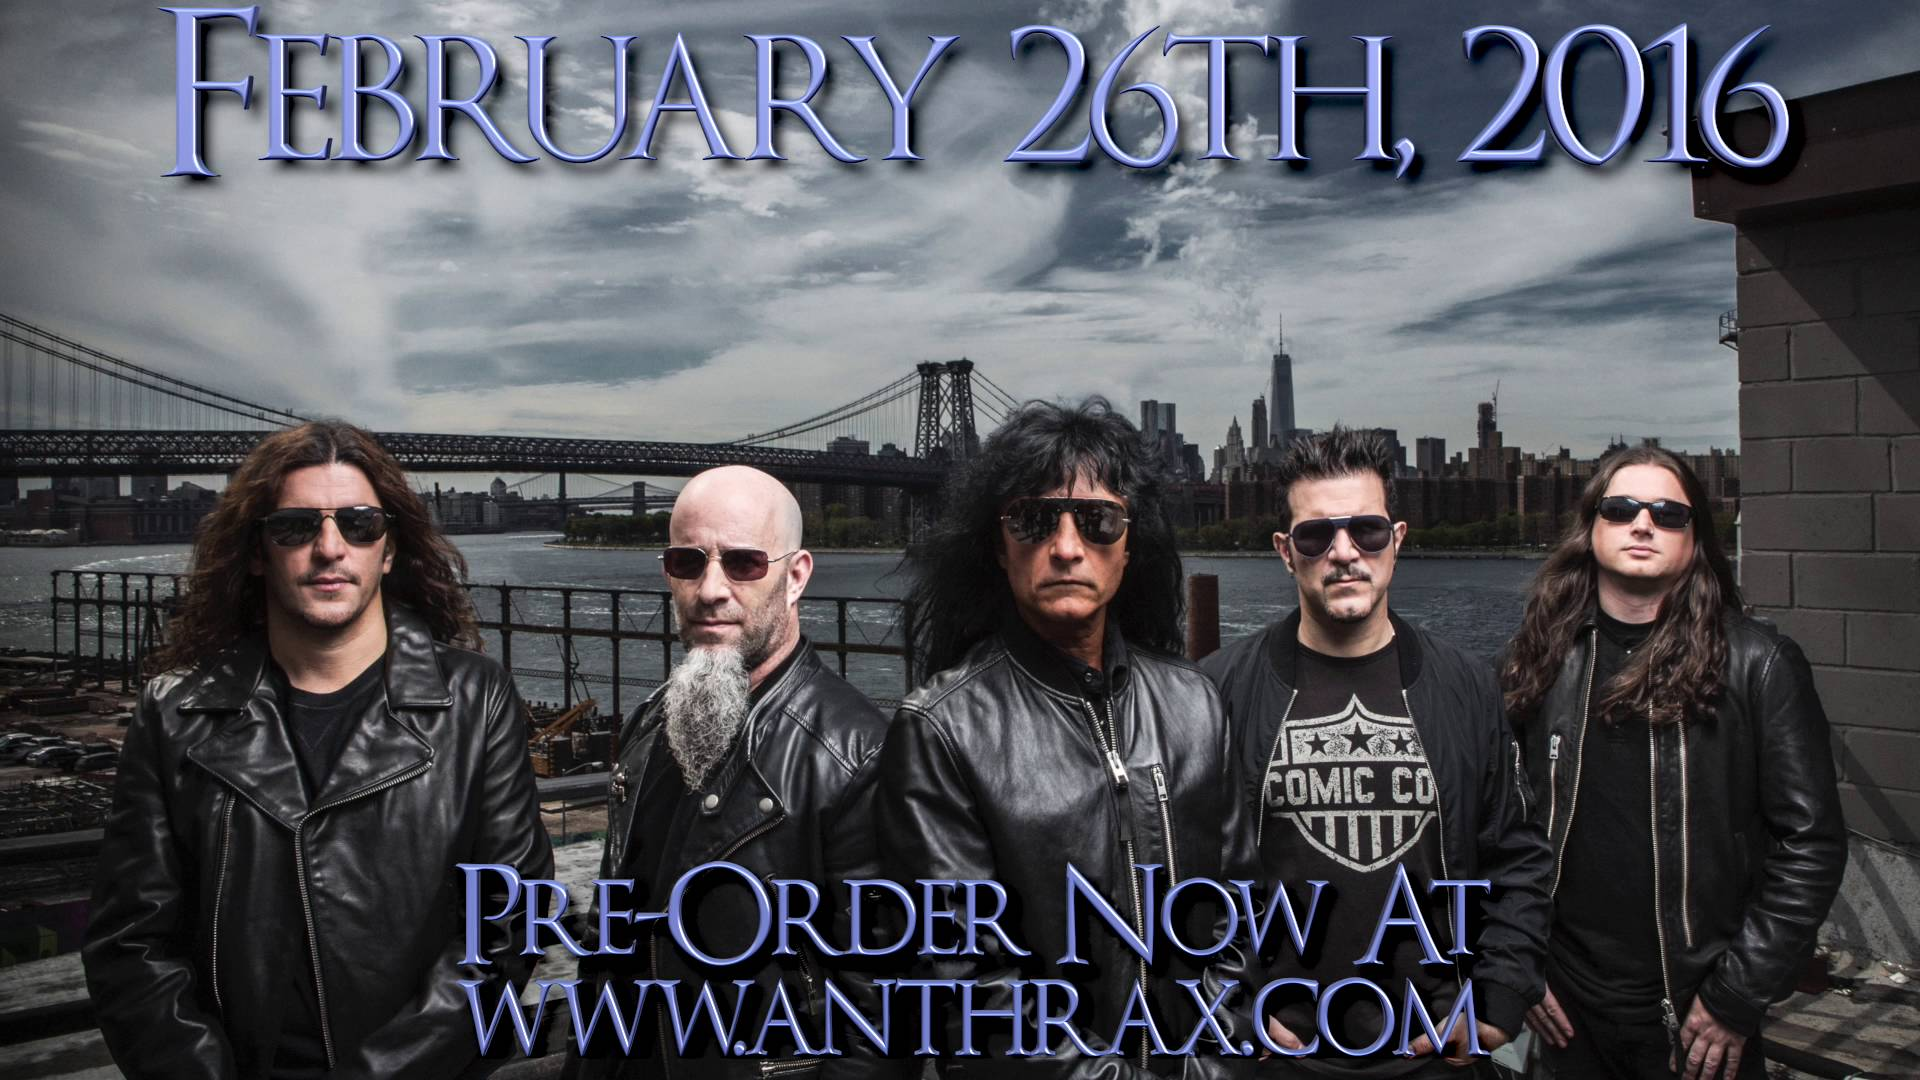 Anthrax discusses the song-writing process for their forthcoming album